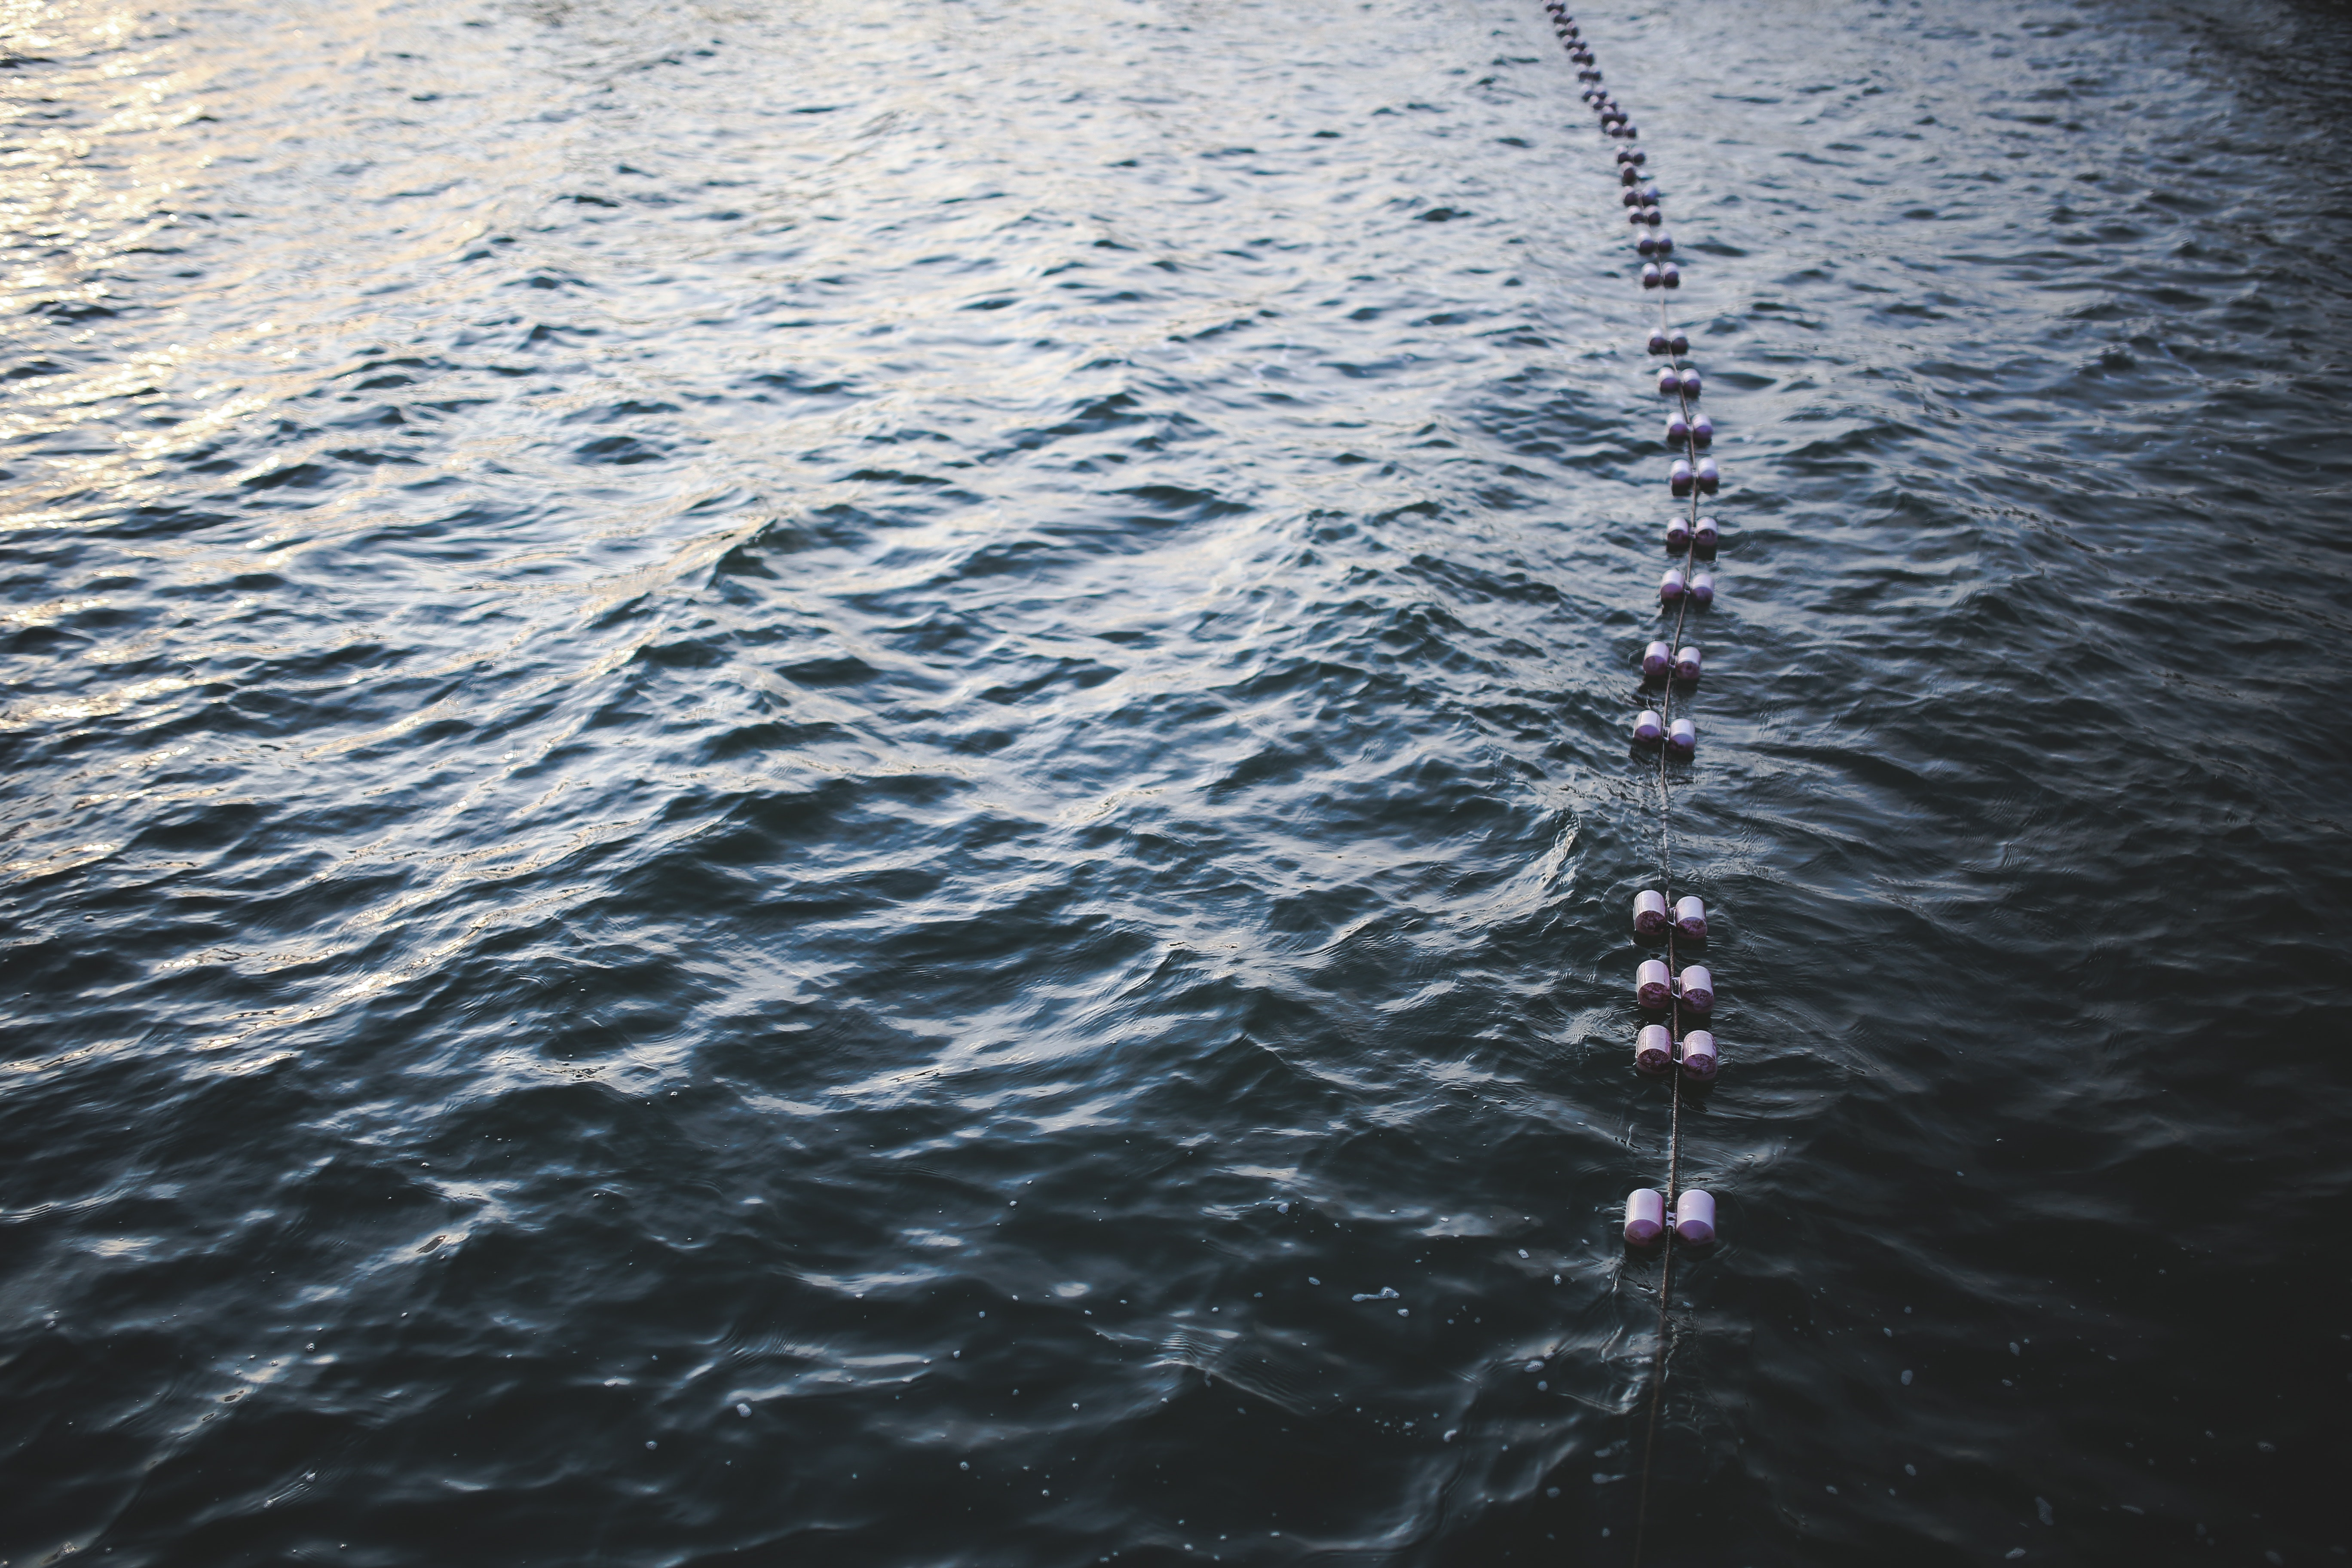 Buoys floating on top of the water, Buoys, Ripple, Wave, Water, HQ Photo